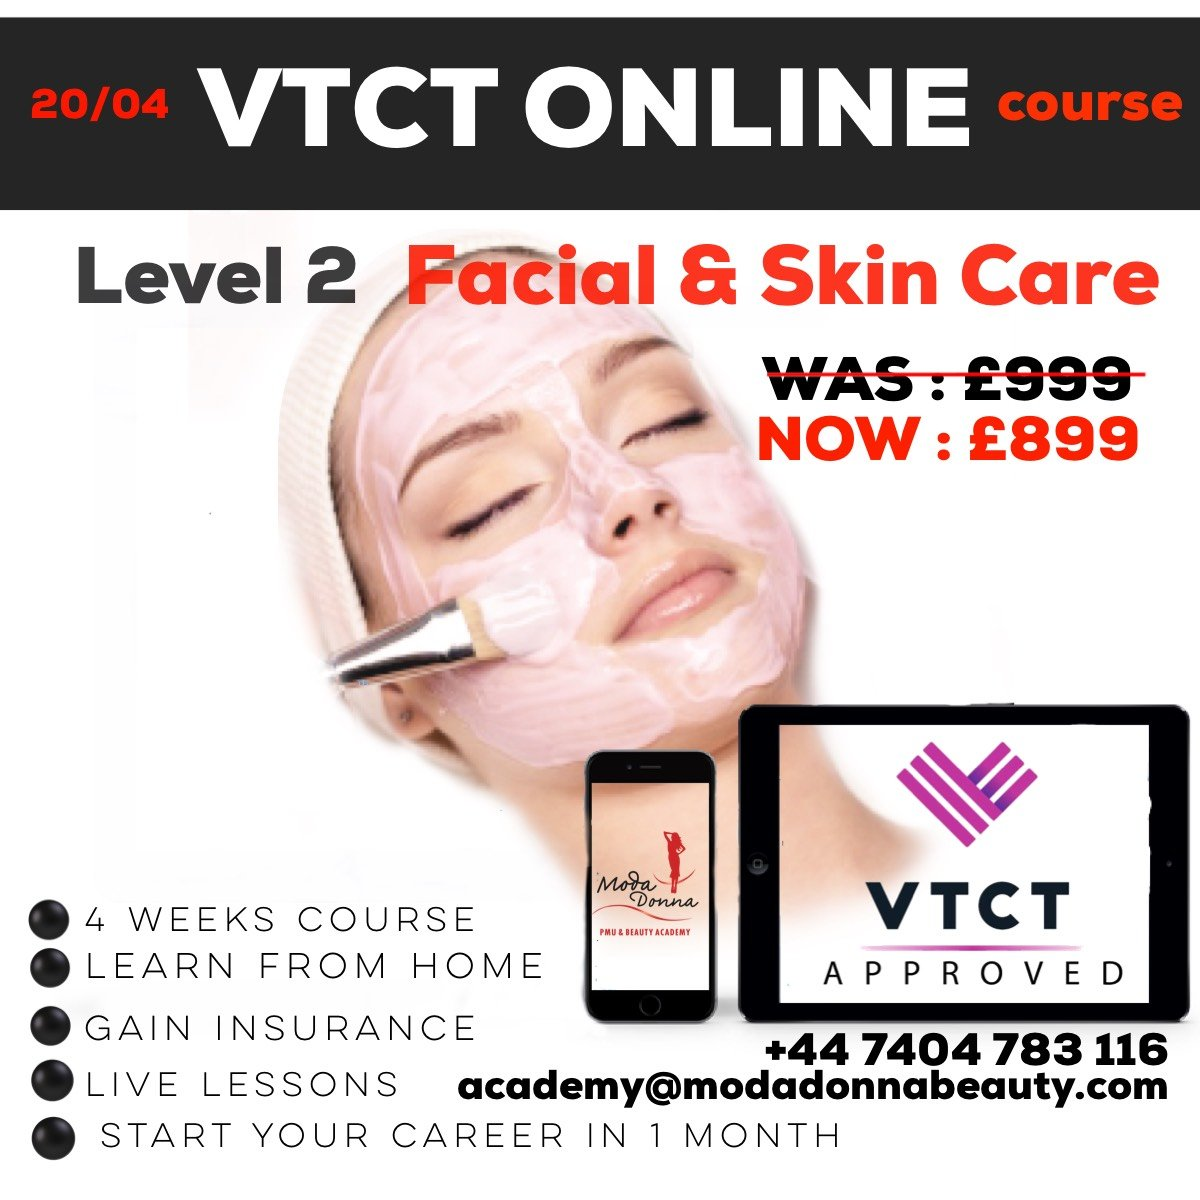 vtct level 2 facial & skin care